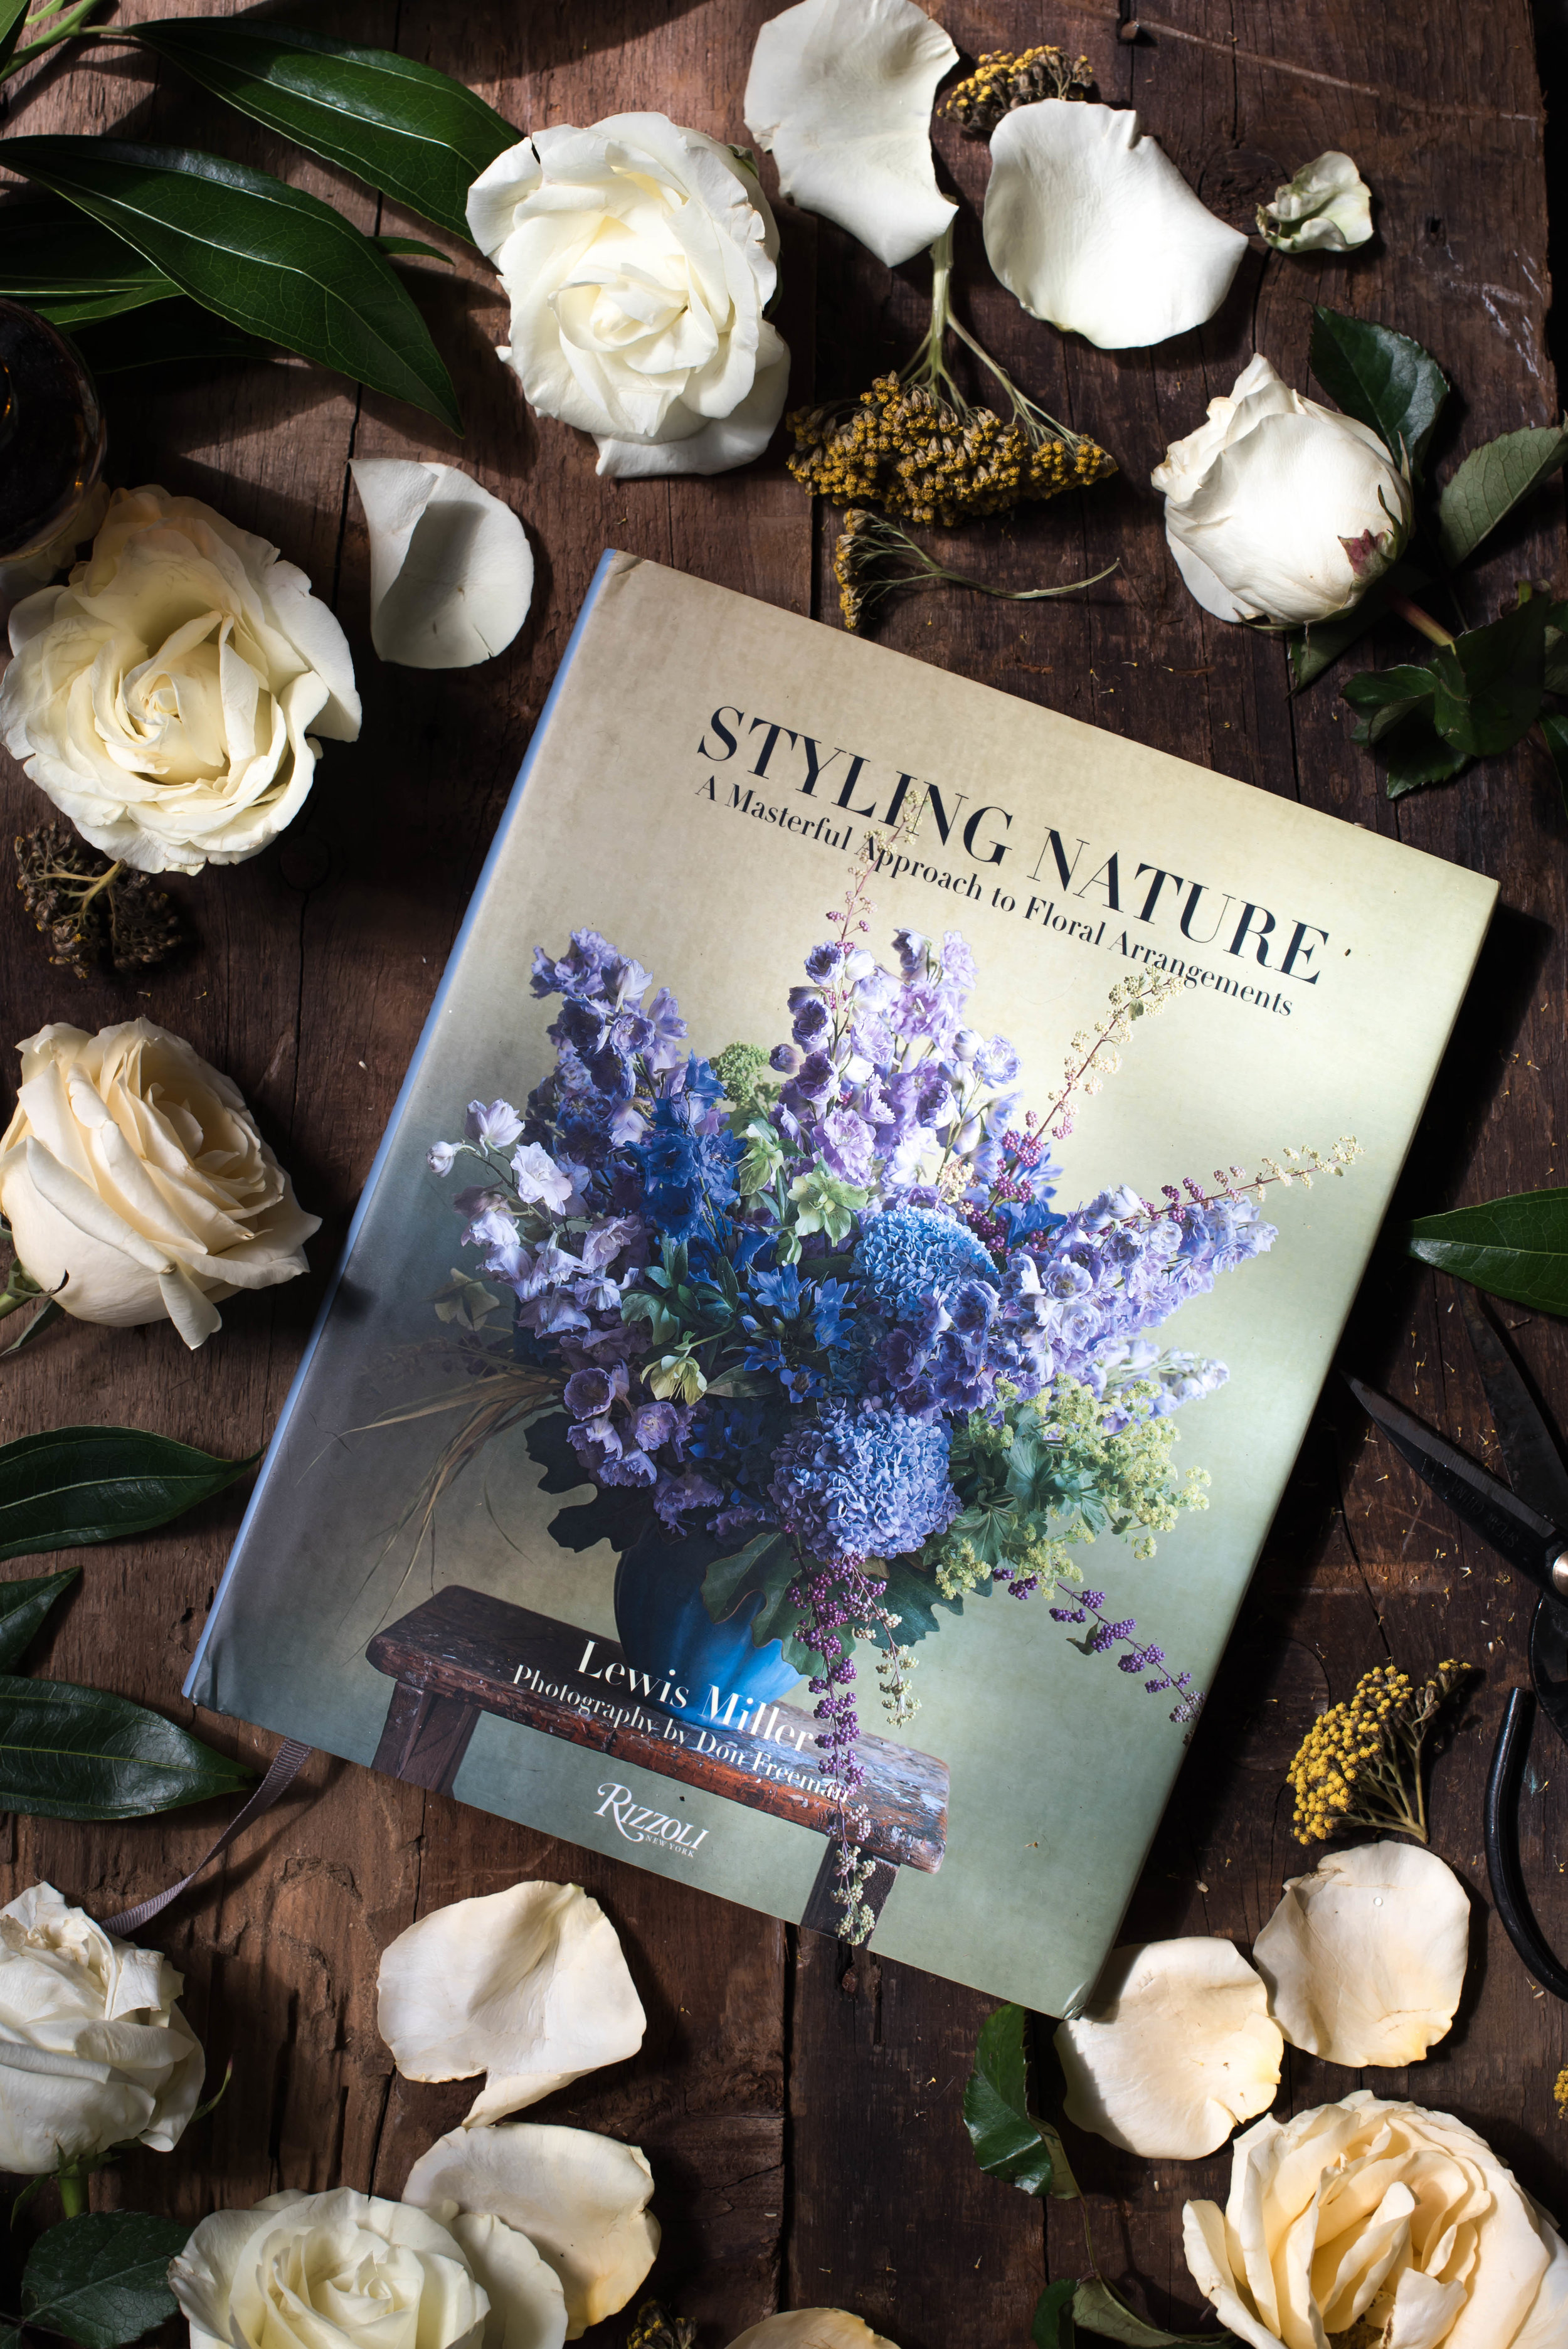 ROSE & IVY JOurnal Styling Nature A Masterful Approach to Floral Arrangements by Lewis Miller